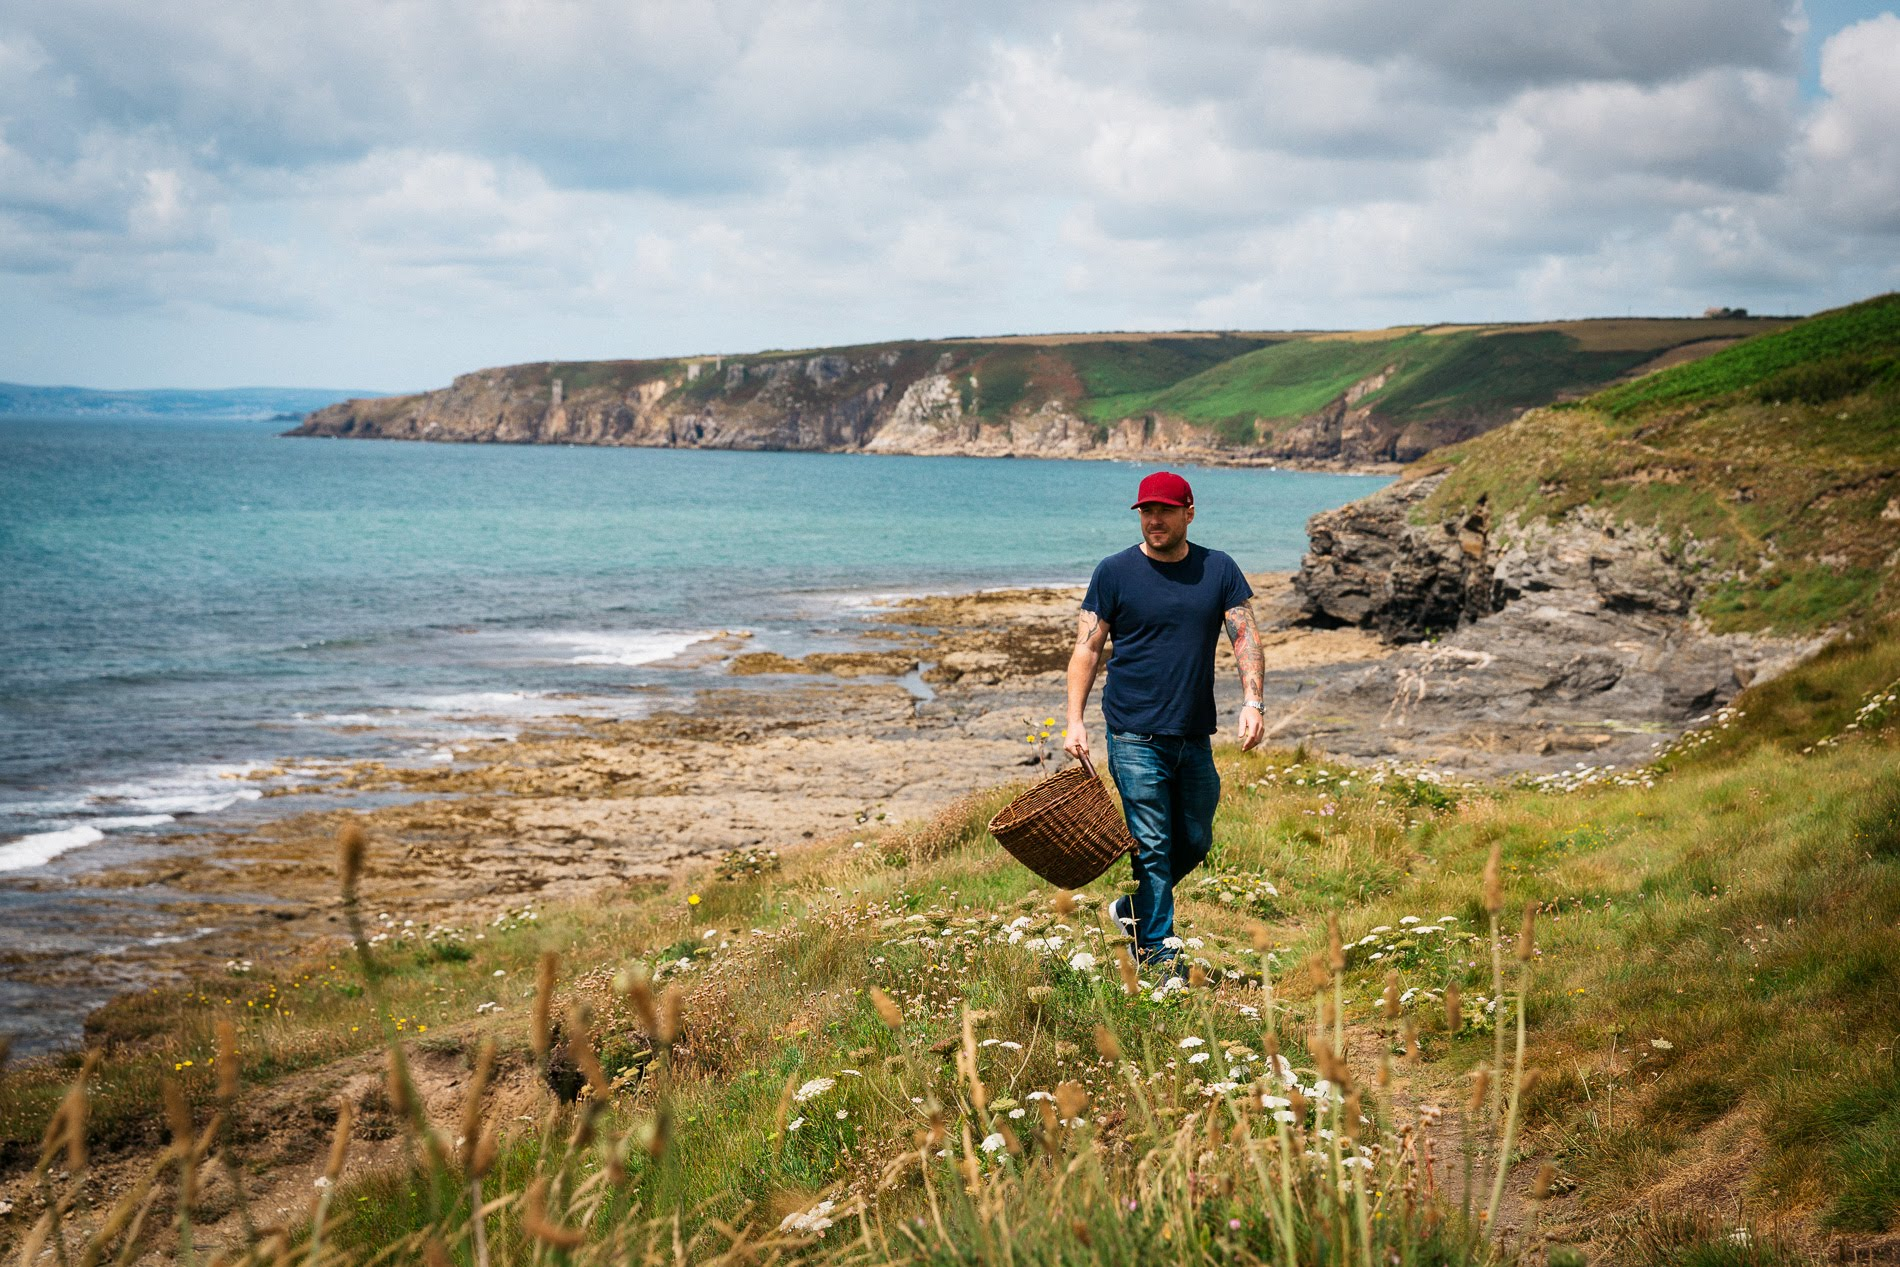 Chef Neil Rankin's coastal adventure in search of unique ingredients